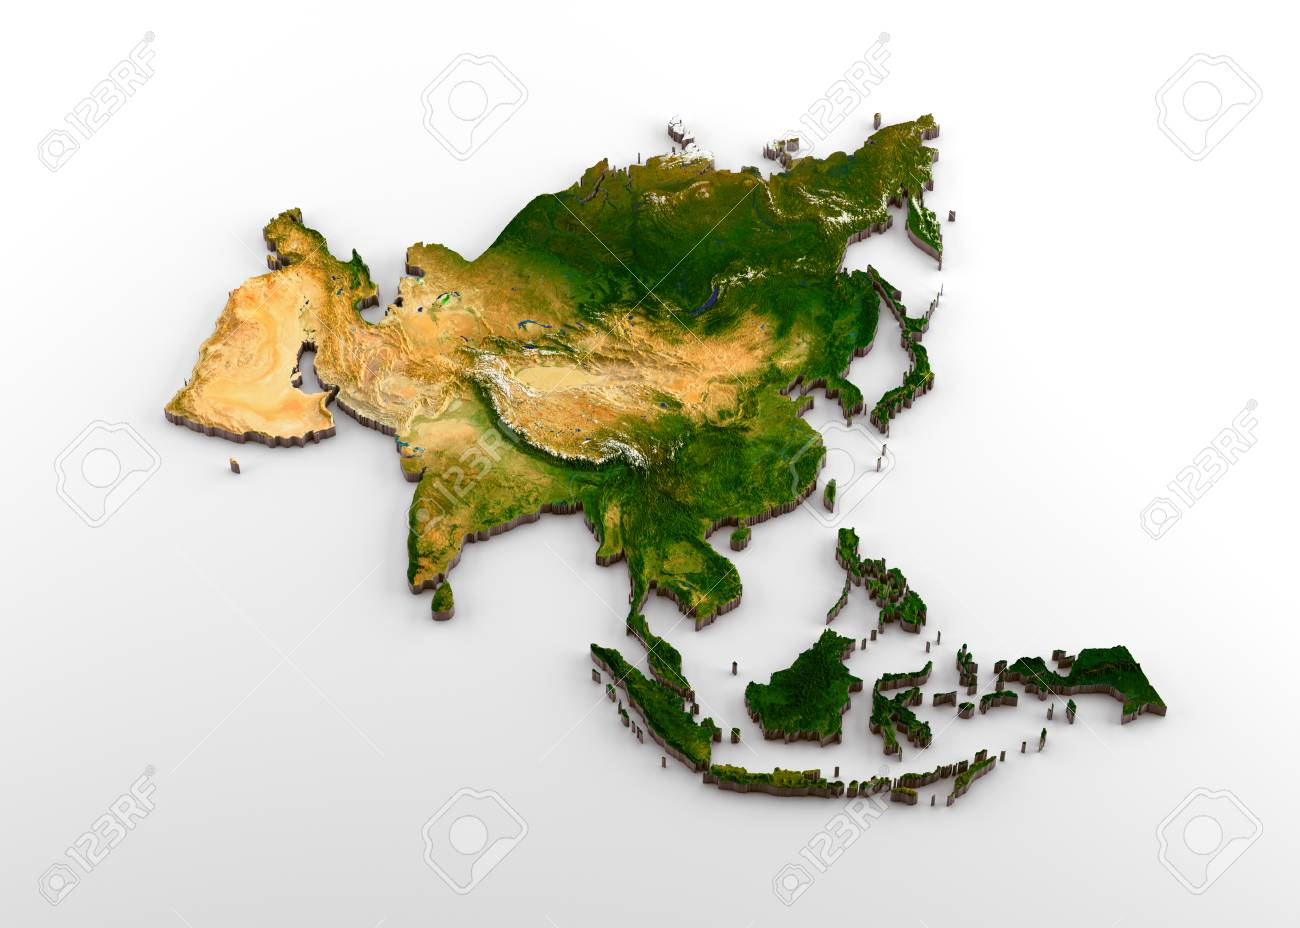 Realistic 3D Extruded Map of Asian Continent (including Indian.. on power world map, woodland world map, fiction world map, meridian world map, lucas world map, india world map, hoy world map, dorsey world map, lena world map, johnson world map, leaf world map, collins world map, sci-fi world map, thompson world map, lebanon world map,